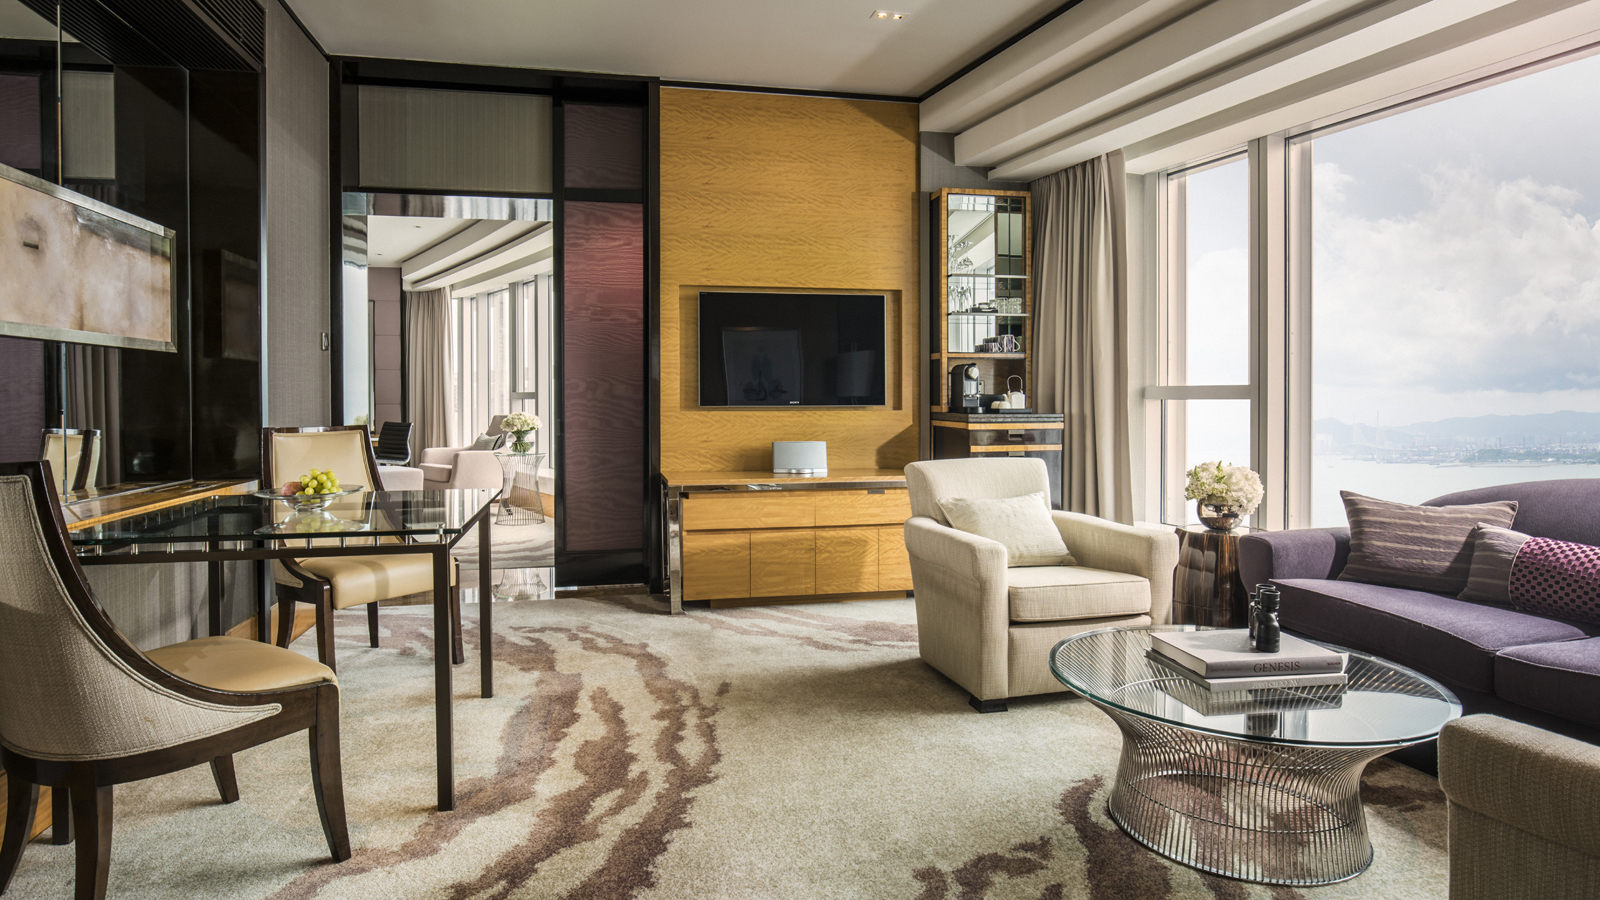 Experience An Extra Night Of Total Luxury In The Ious Suites Four Seasons Hotel Hong Kong Until March 31 2018 Your Third A Harbour View